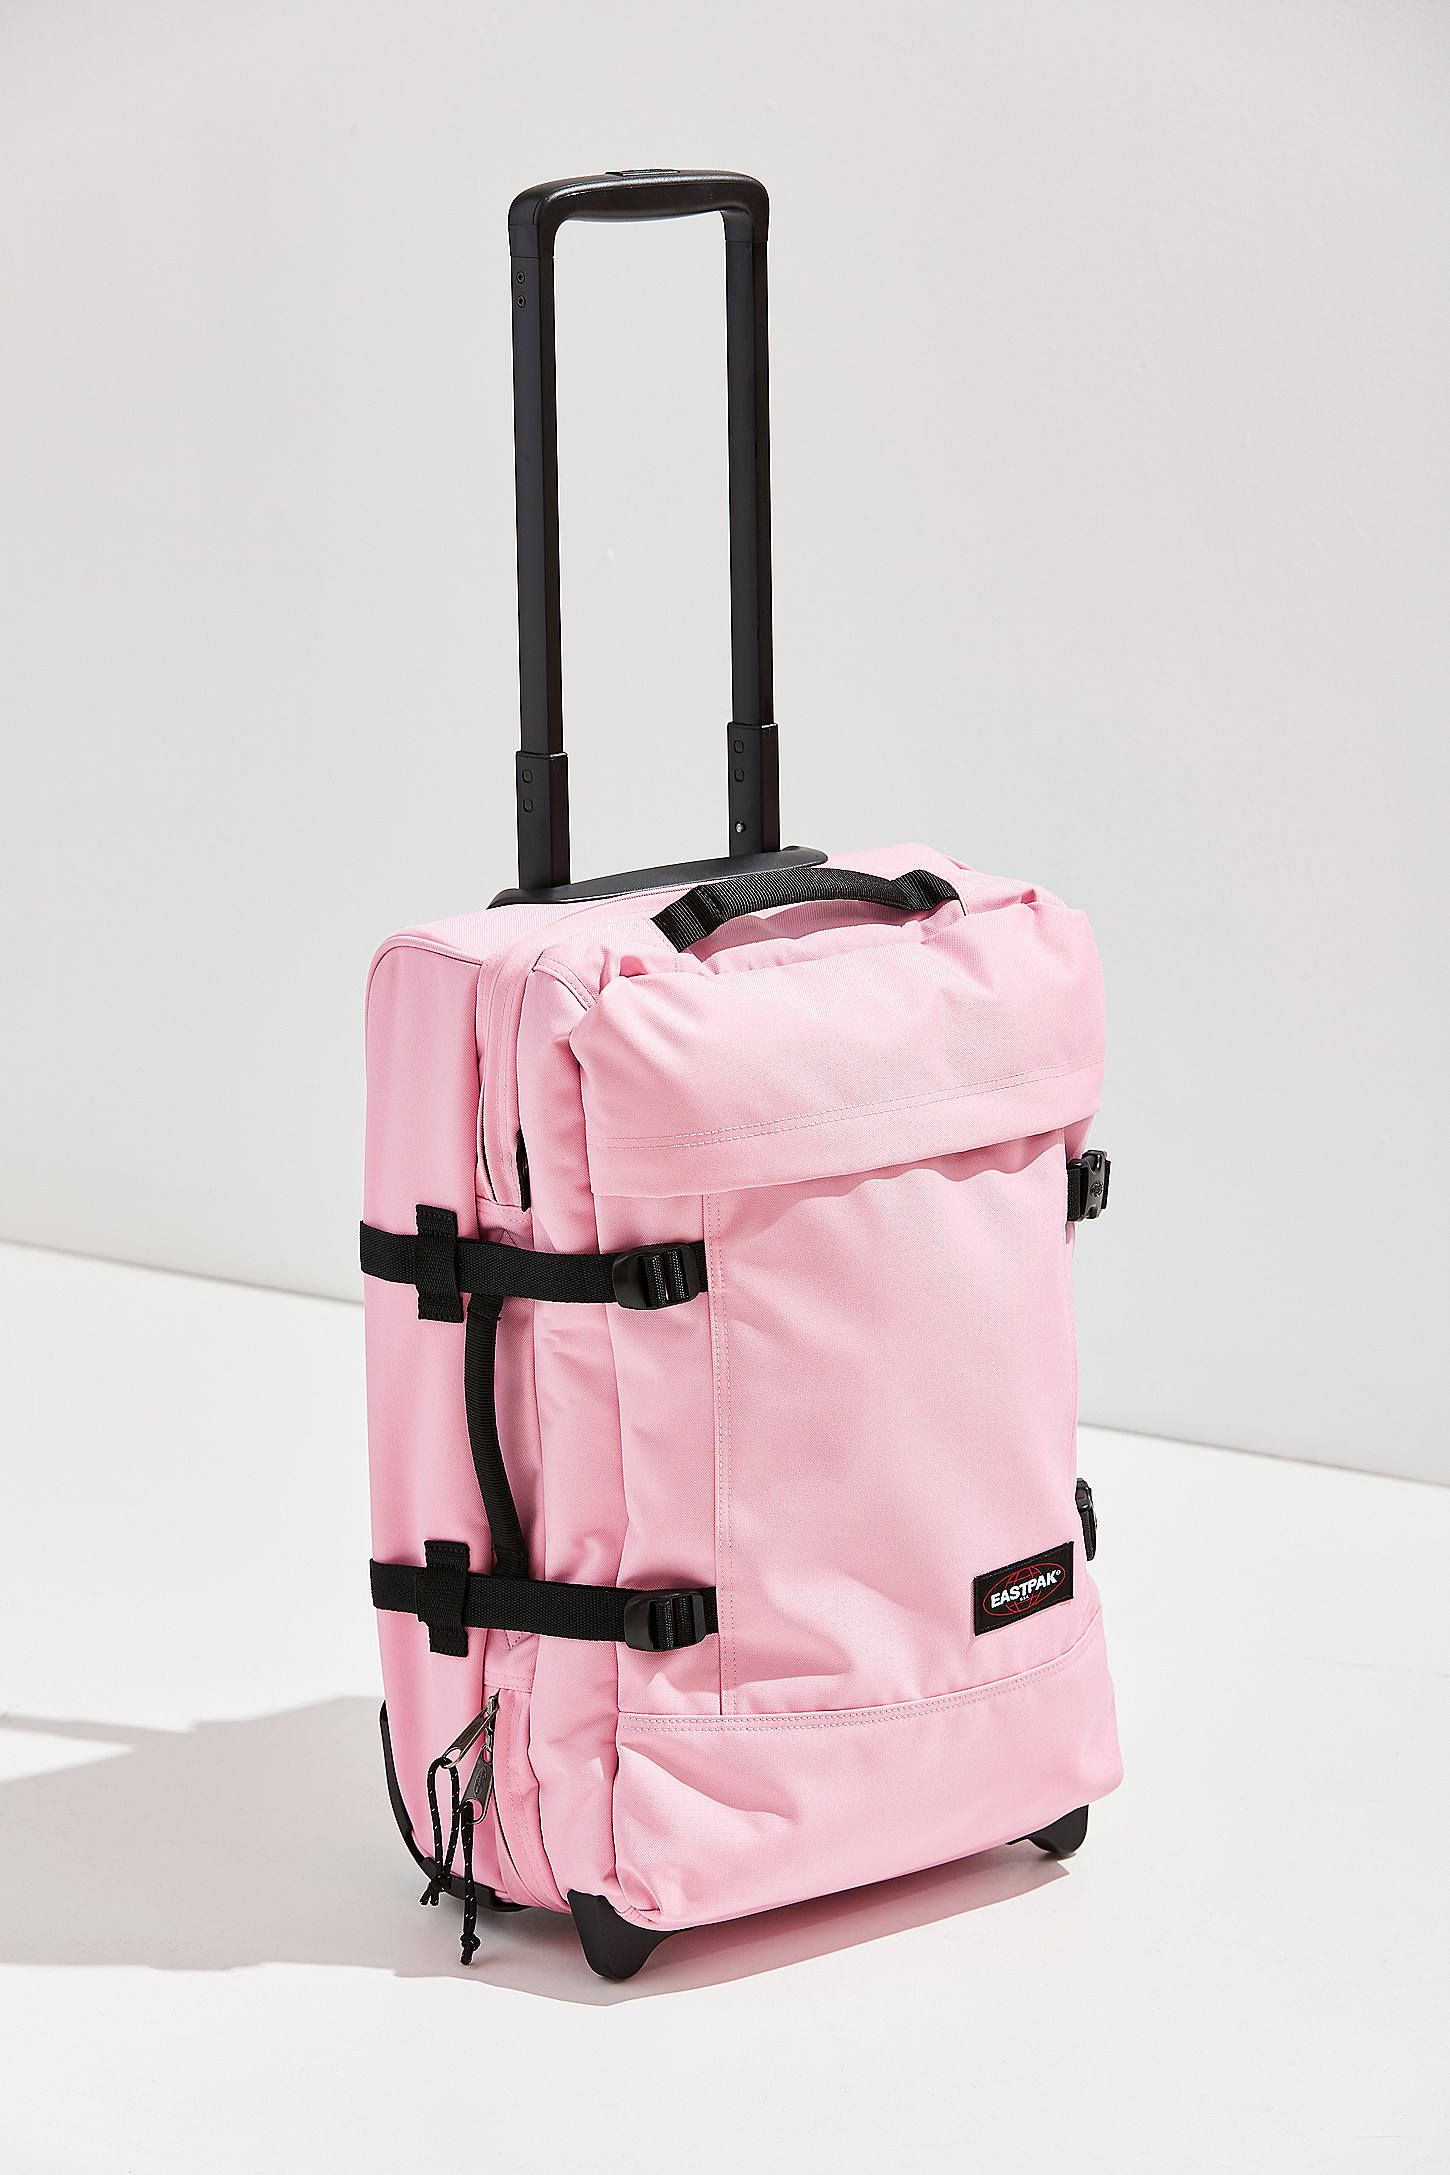 Eastpak Tranverz S Eastpak Tranverz S Carry On Luggage Travel In 2019 Carry On